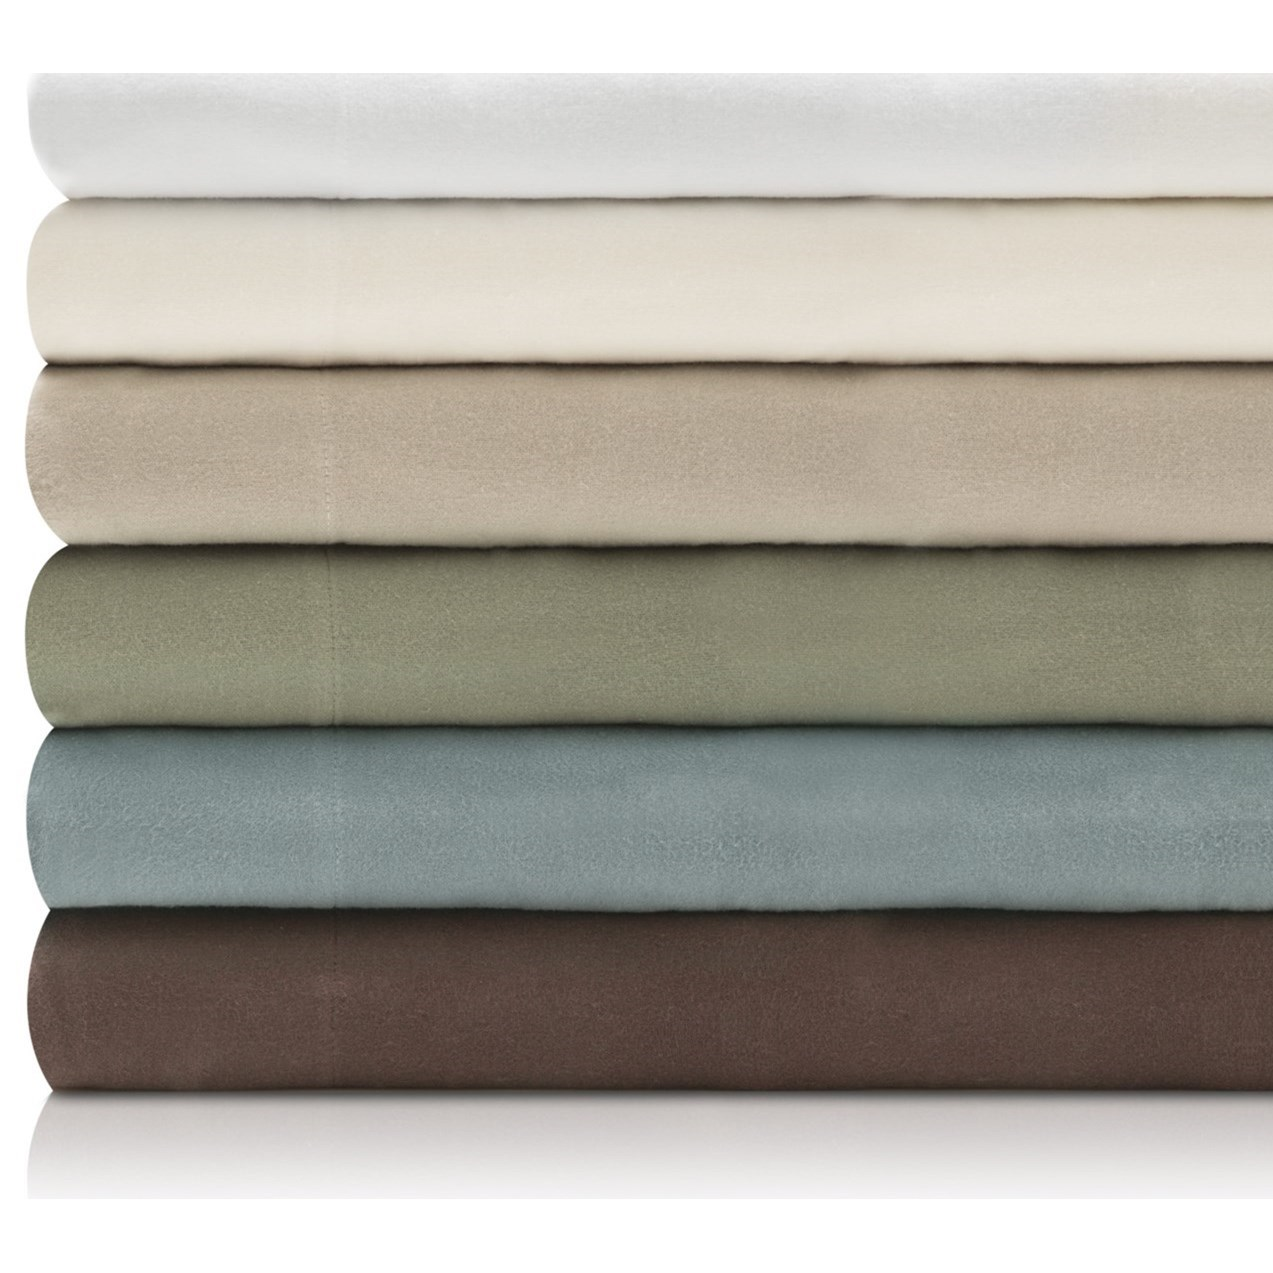 Malouf Portuguese Flannel Full XL Woven™ Portuguese Flannel Sheet Set - Item Number: WO19FXPAFS